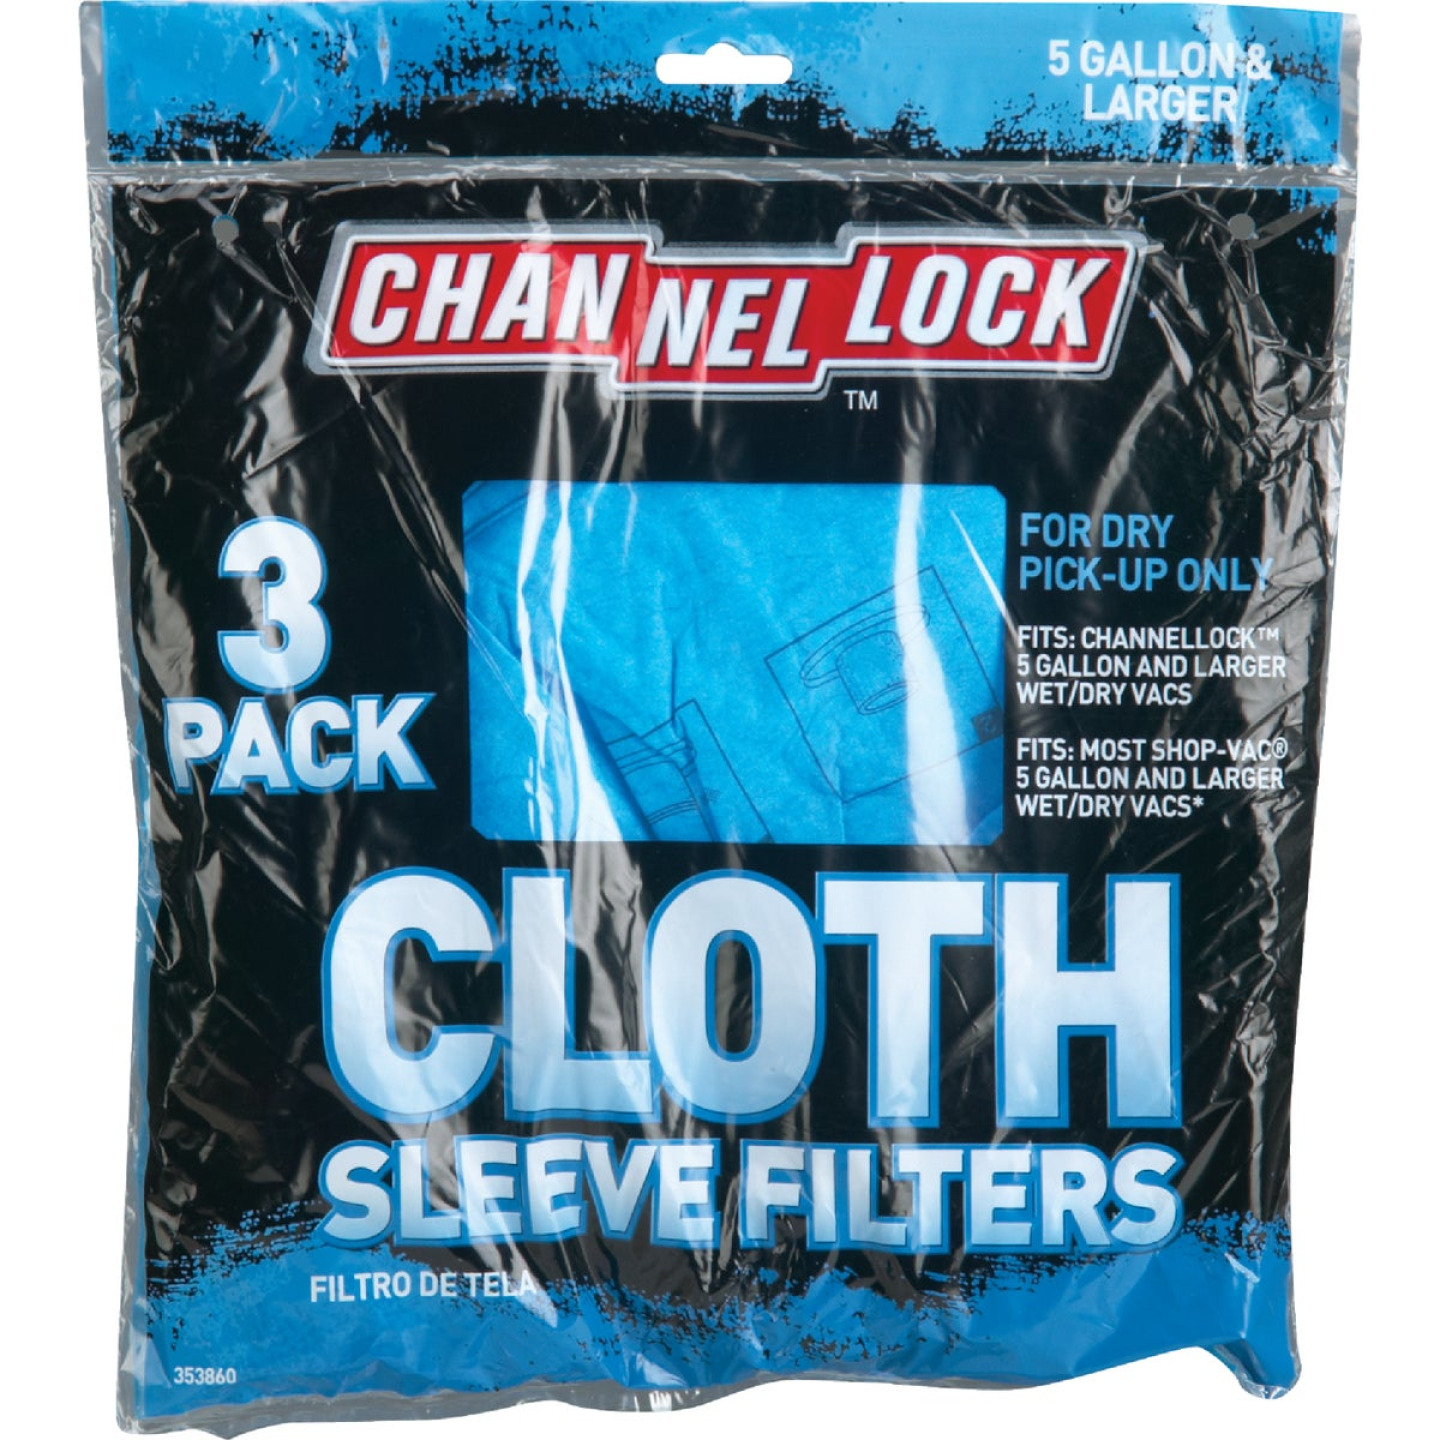 Channellock Cloth Standard 5 Gal. Filter Vacuum Bag Image 2